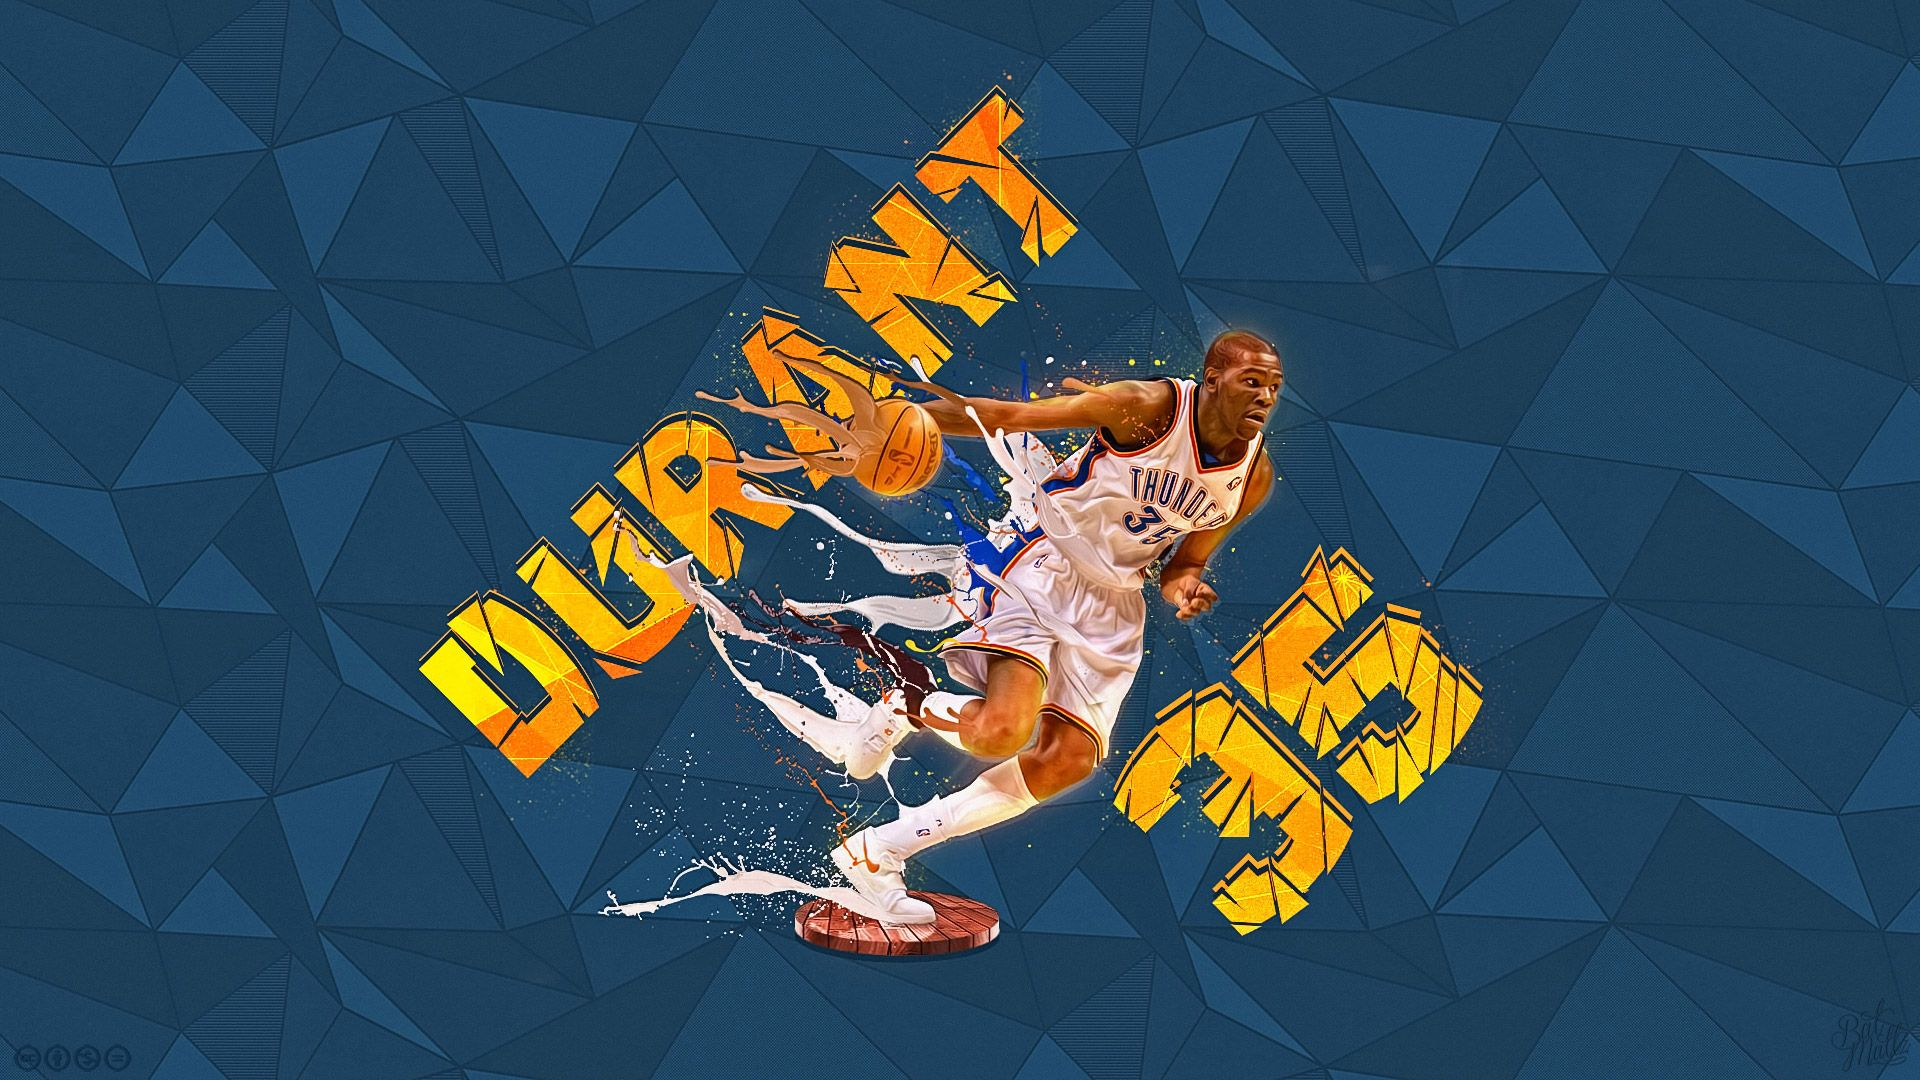 Kevin Durant Wallpaper 2015 Hd 105 images in Collection Page 2 1920x1080